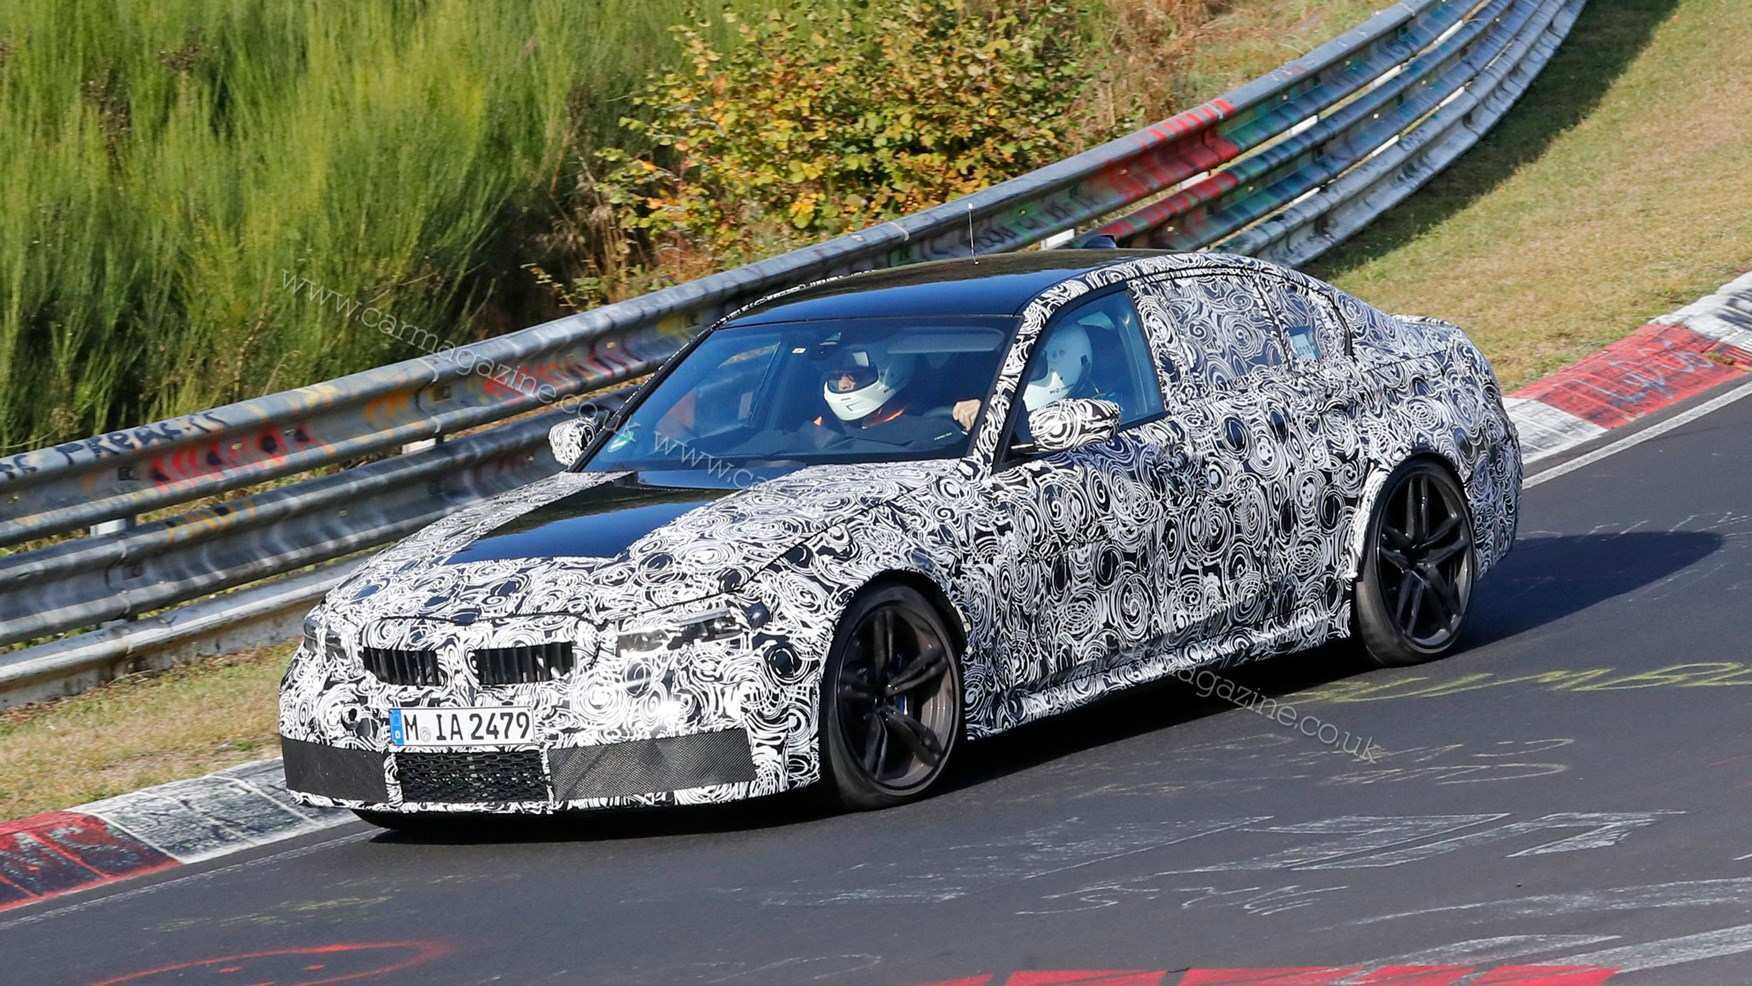 69 Great Bmw 4Er 2020 Specs and Review by Bmw 4Er 2020